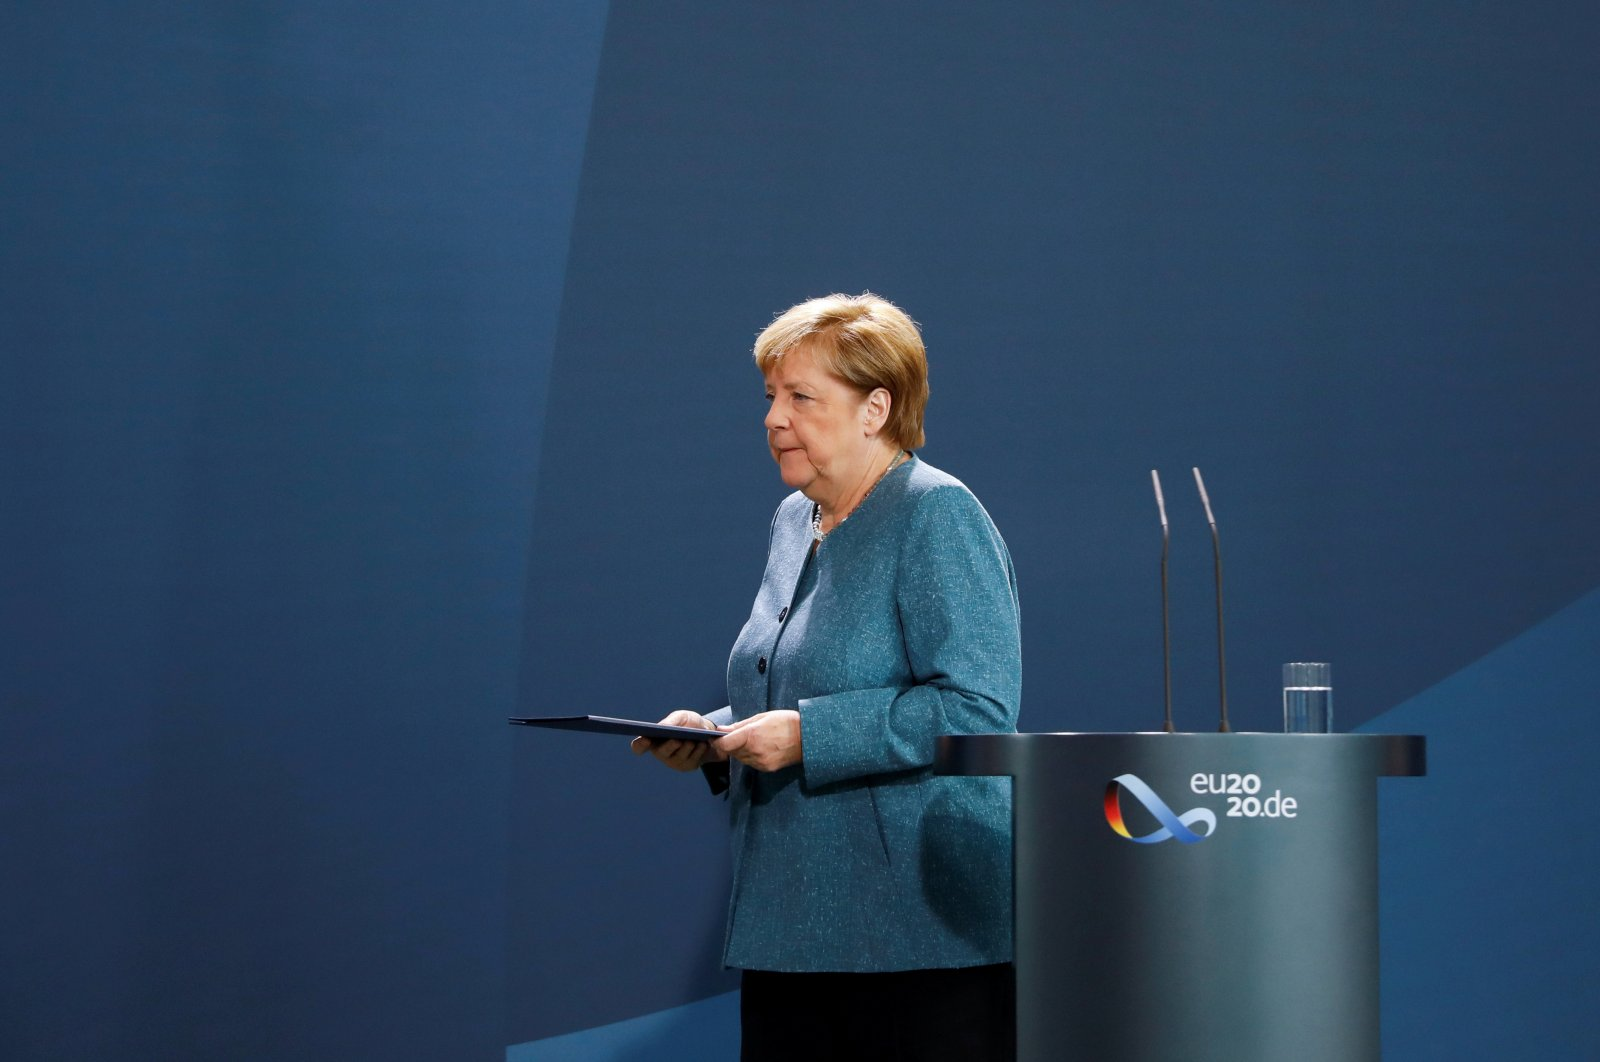 German Chancellor Angela Merkel leaves after a statement about the latest developments in the case of Russian opposition leader Alexei Navalny at the chancellery, Berlin, Sept. 2, 2020. (REUTERS Photo)